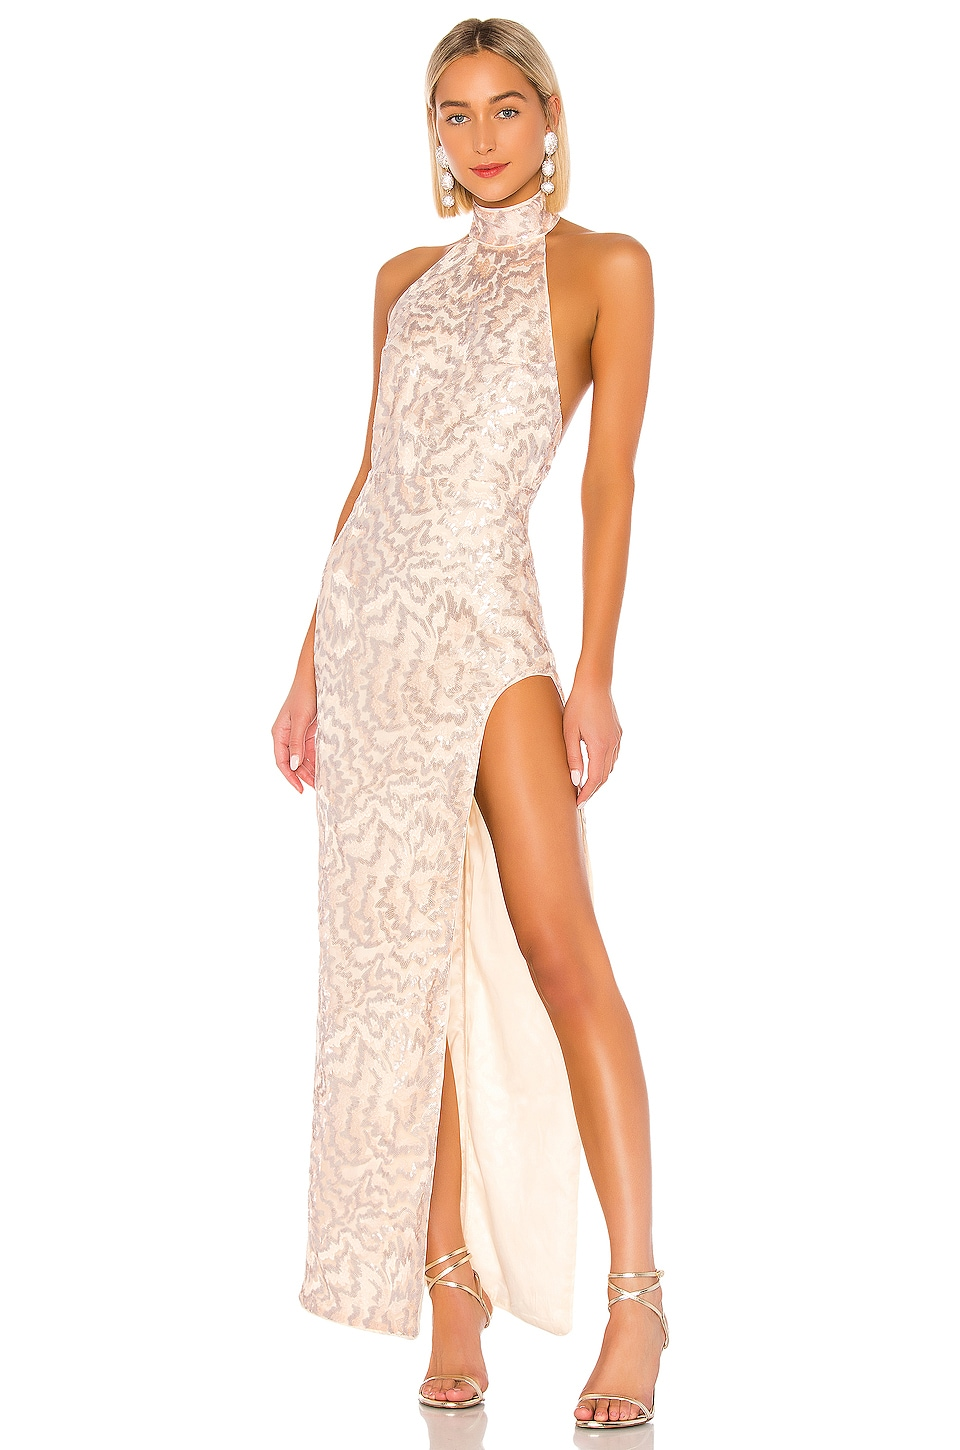 Michael Costello x REVOLVE Penelope Gown in Light Pink